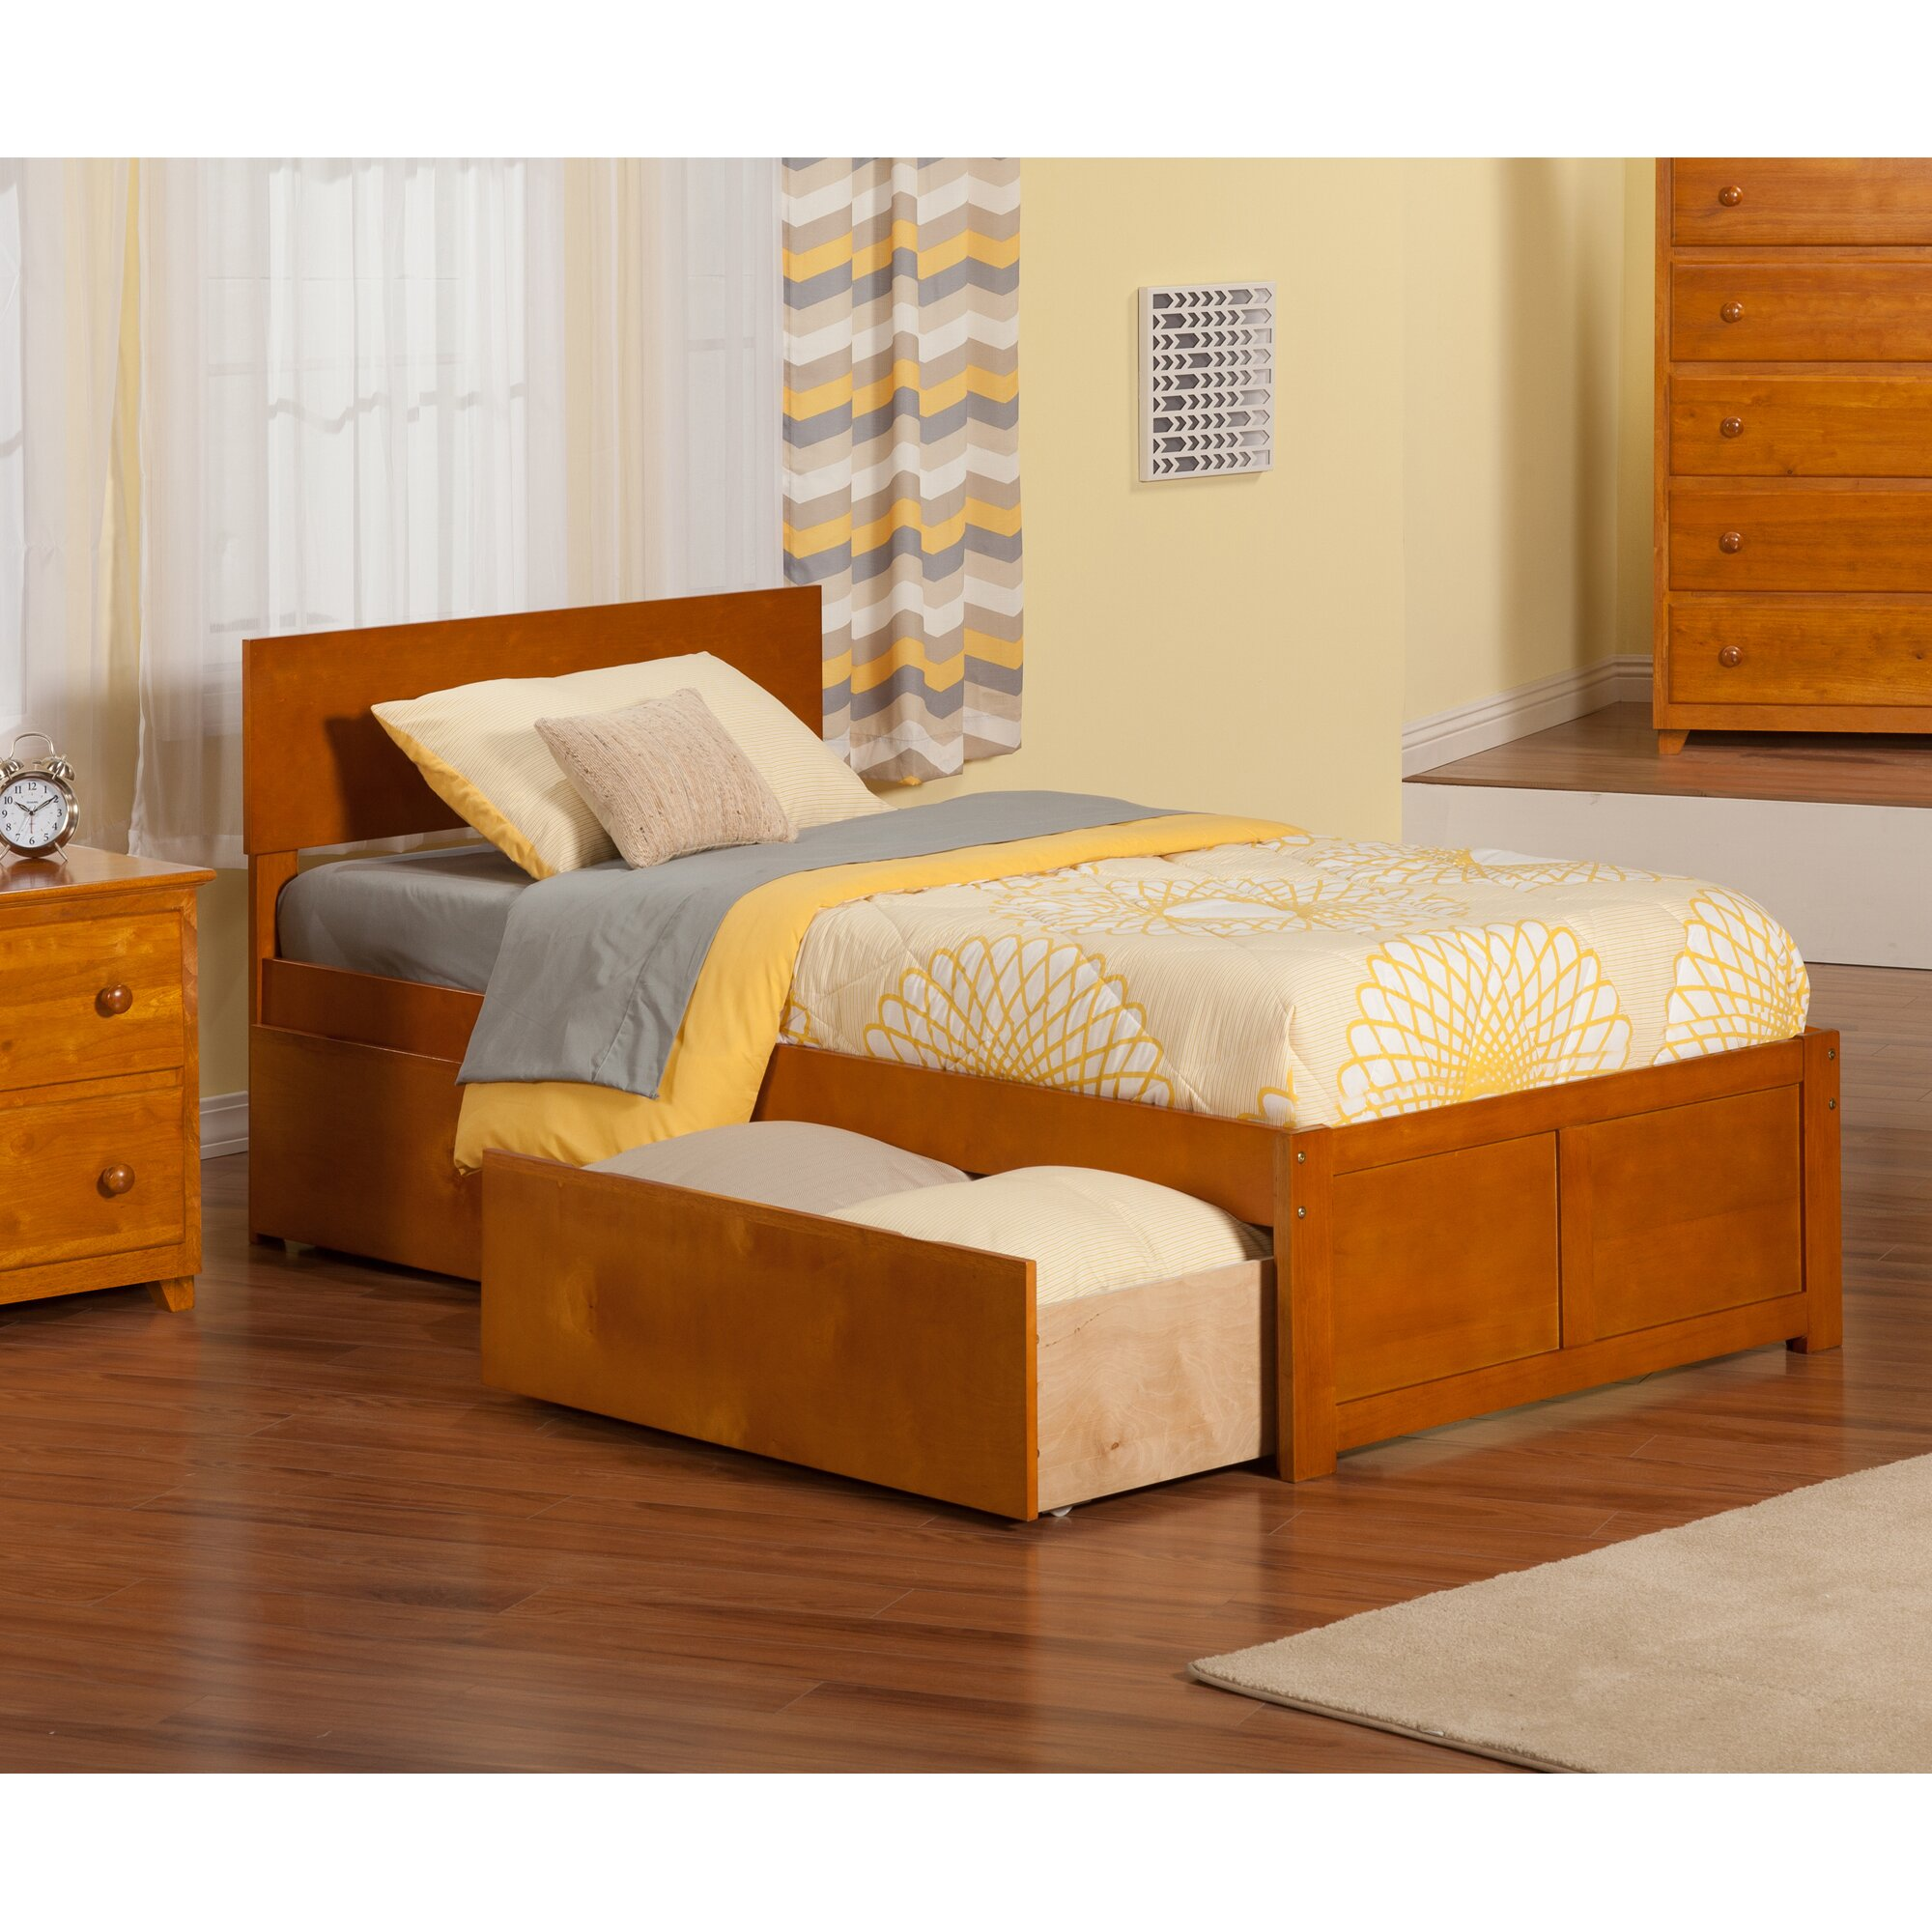 Viv Rae Mathias Extra Long Twin Panel Bed with Storage